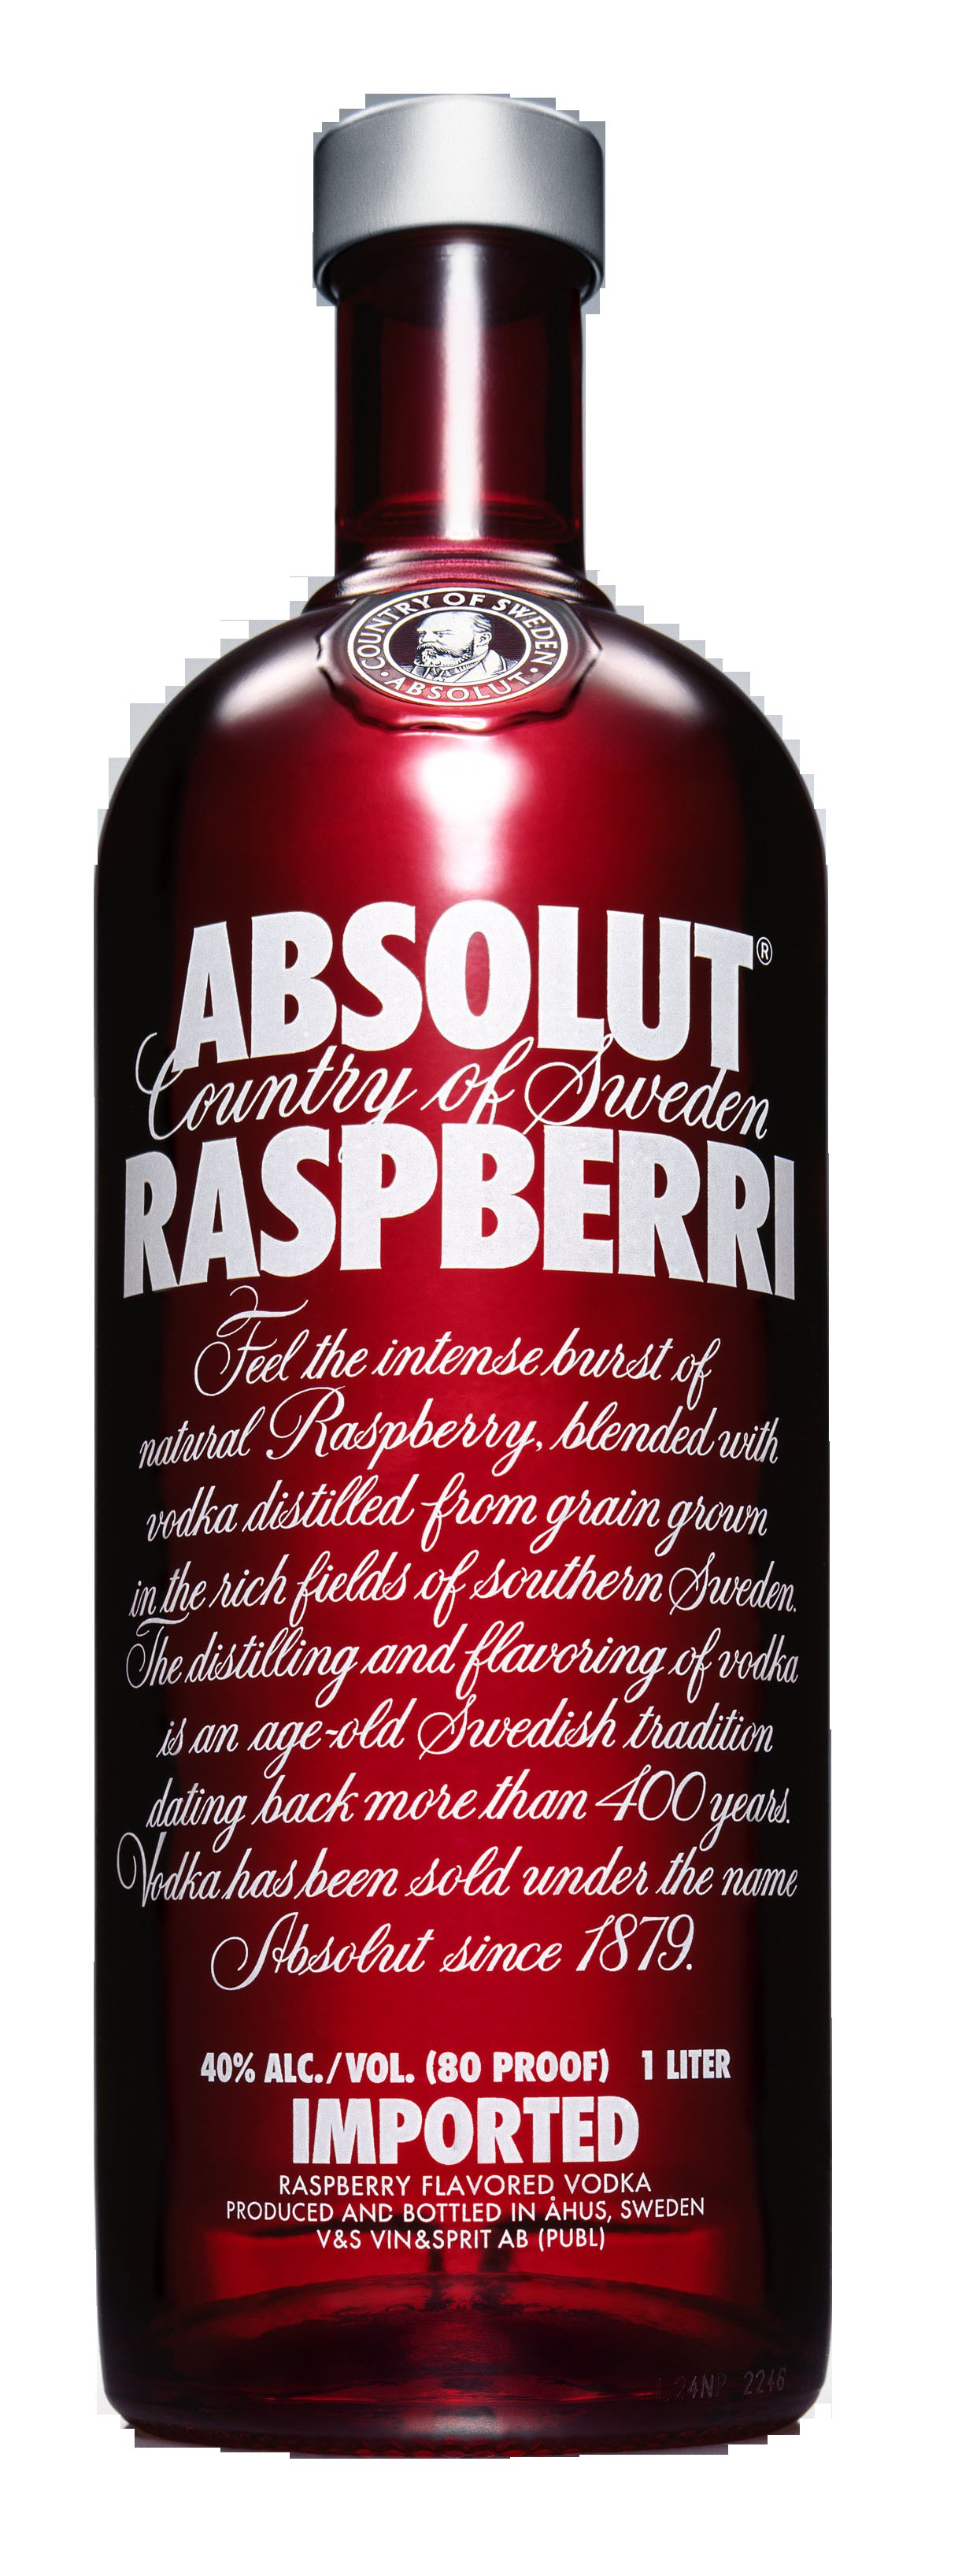 absolut vodka advertising campaign case study Absolutly fabulous: a case study on absolut vodka's gay friendly campaign absolut launched it's vodka, absolut cut, with a new campaign of television.